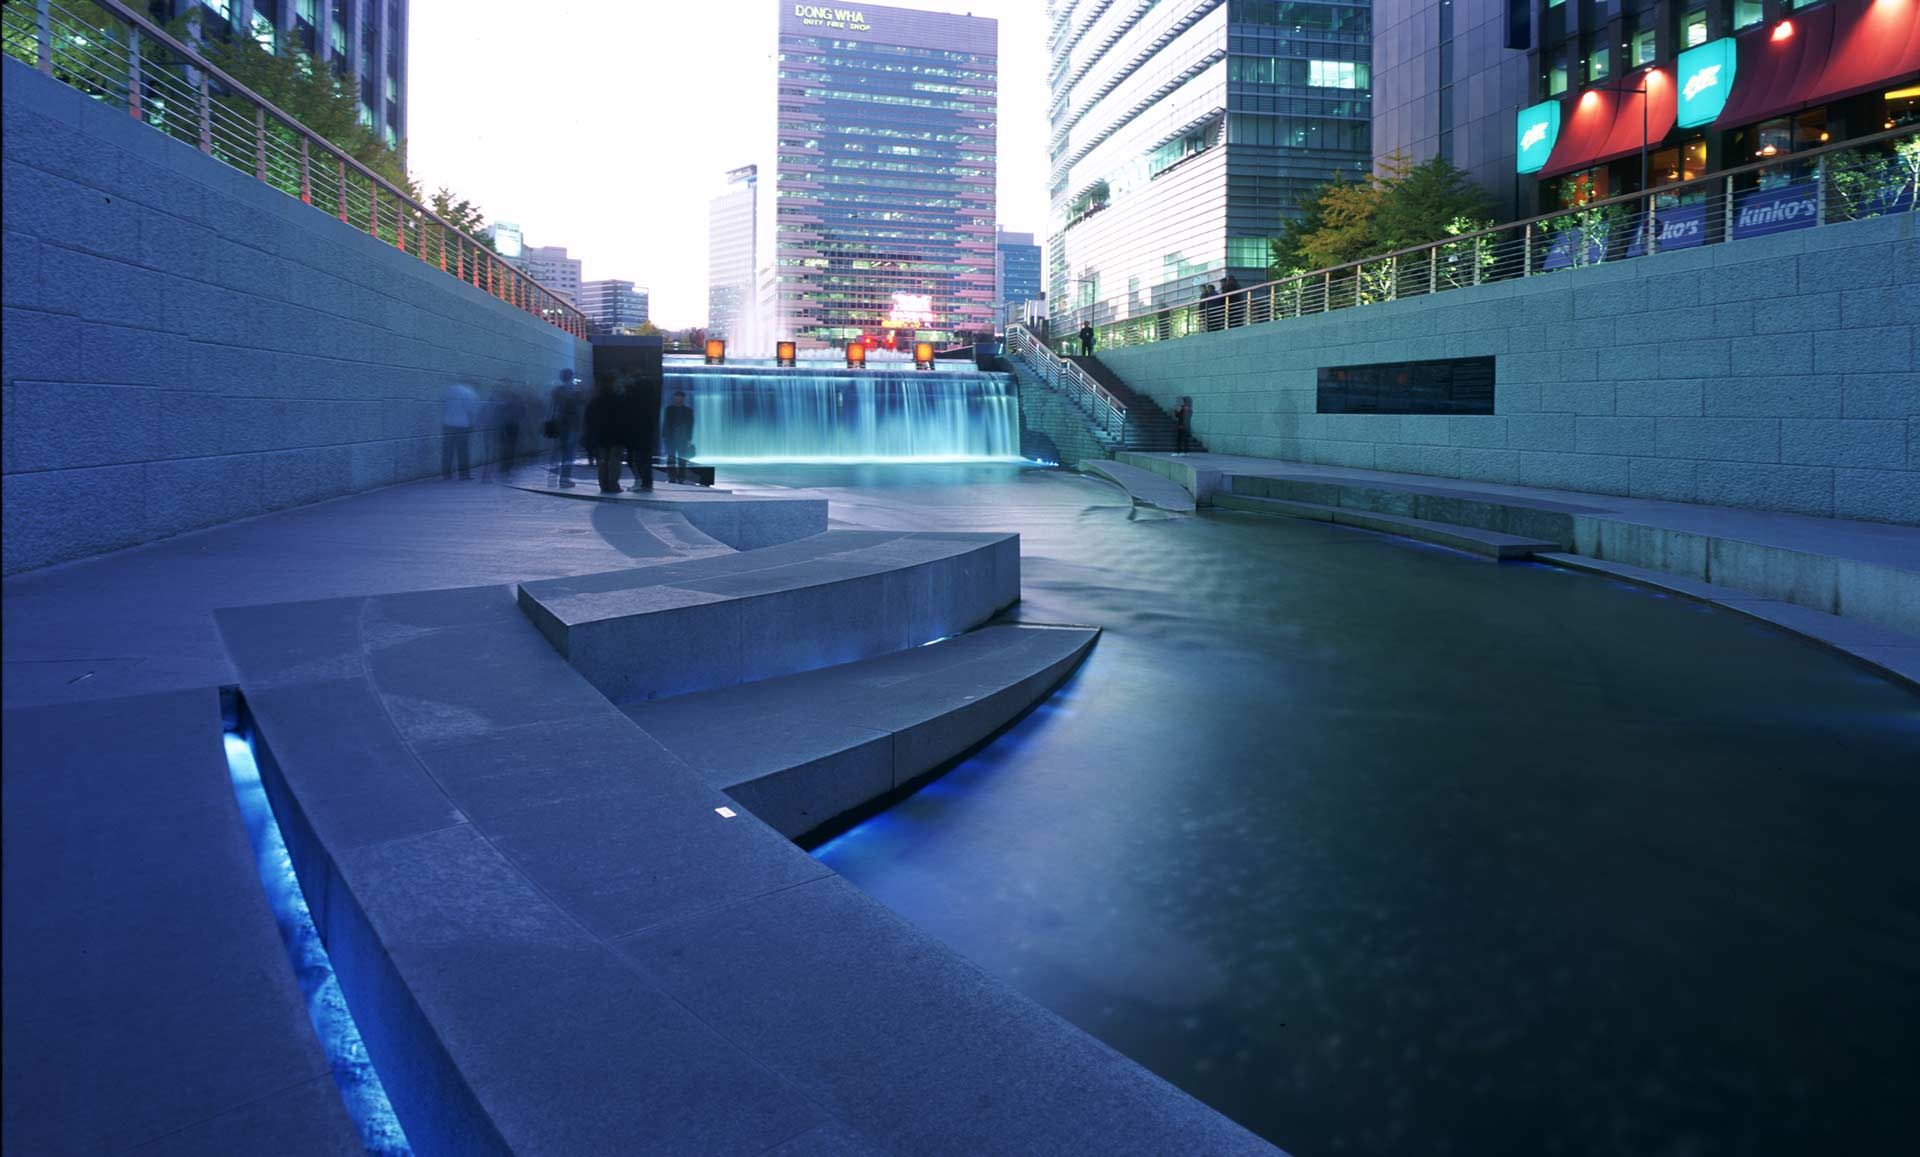 Chongae canal restoration project by mikyoung kim design for Architecture 00